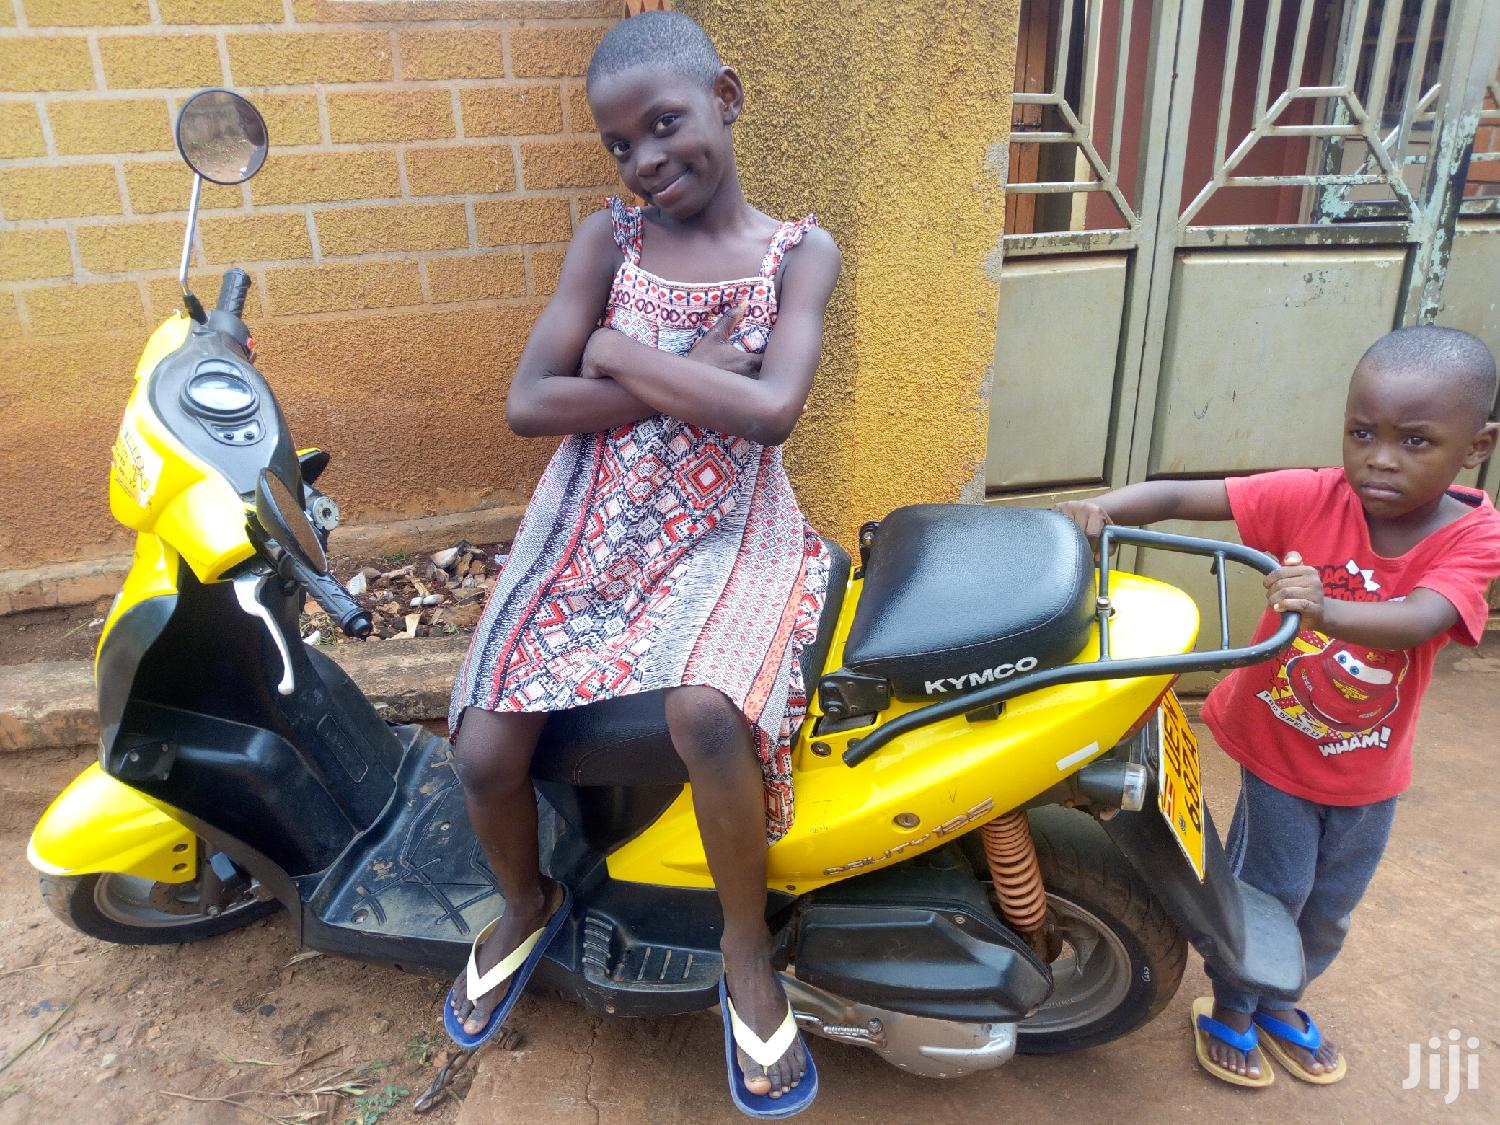 Kymco Agility 2014 Yellow | Motorcycles & Scooters for sale in Kampala, Central Region, Uganda